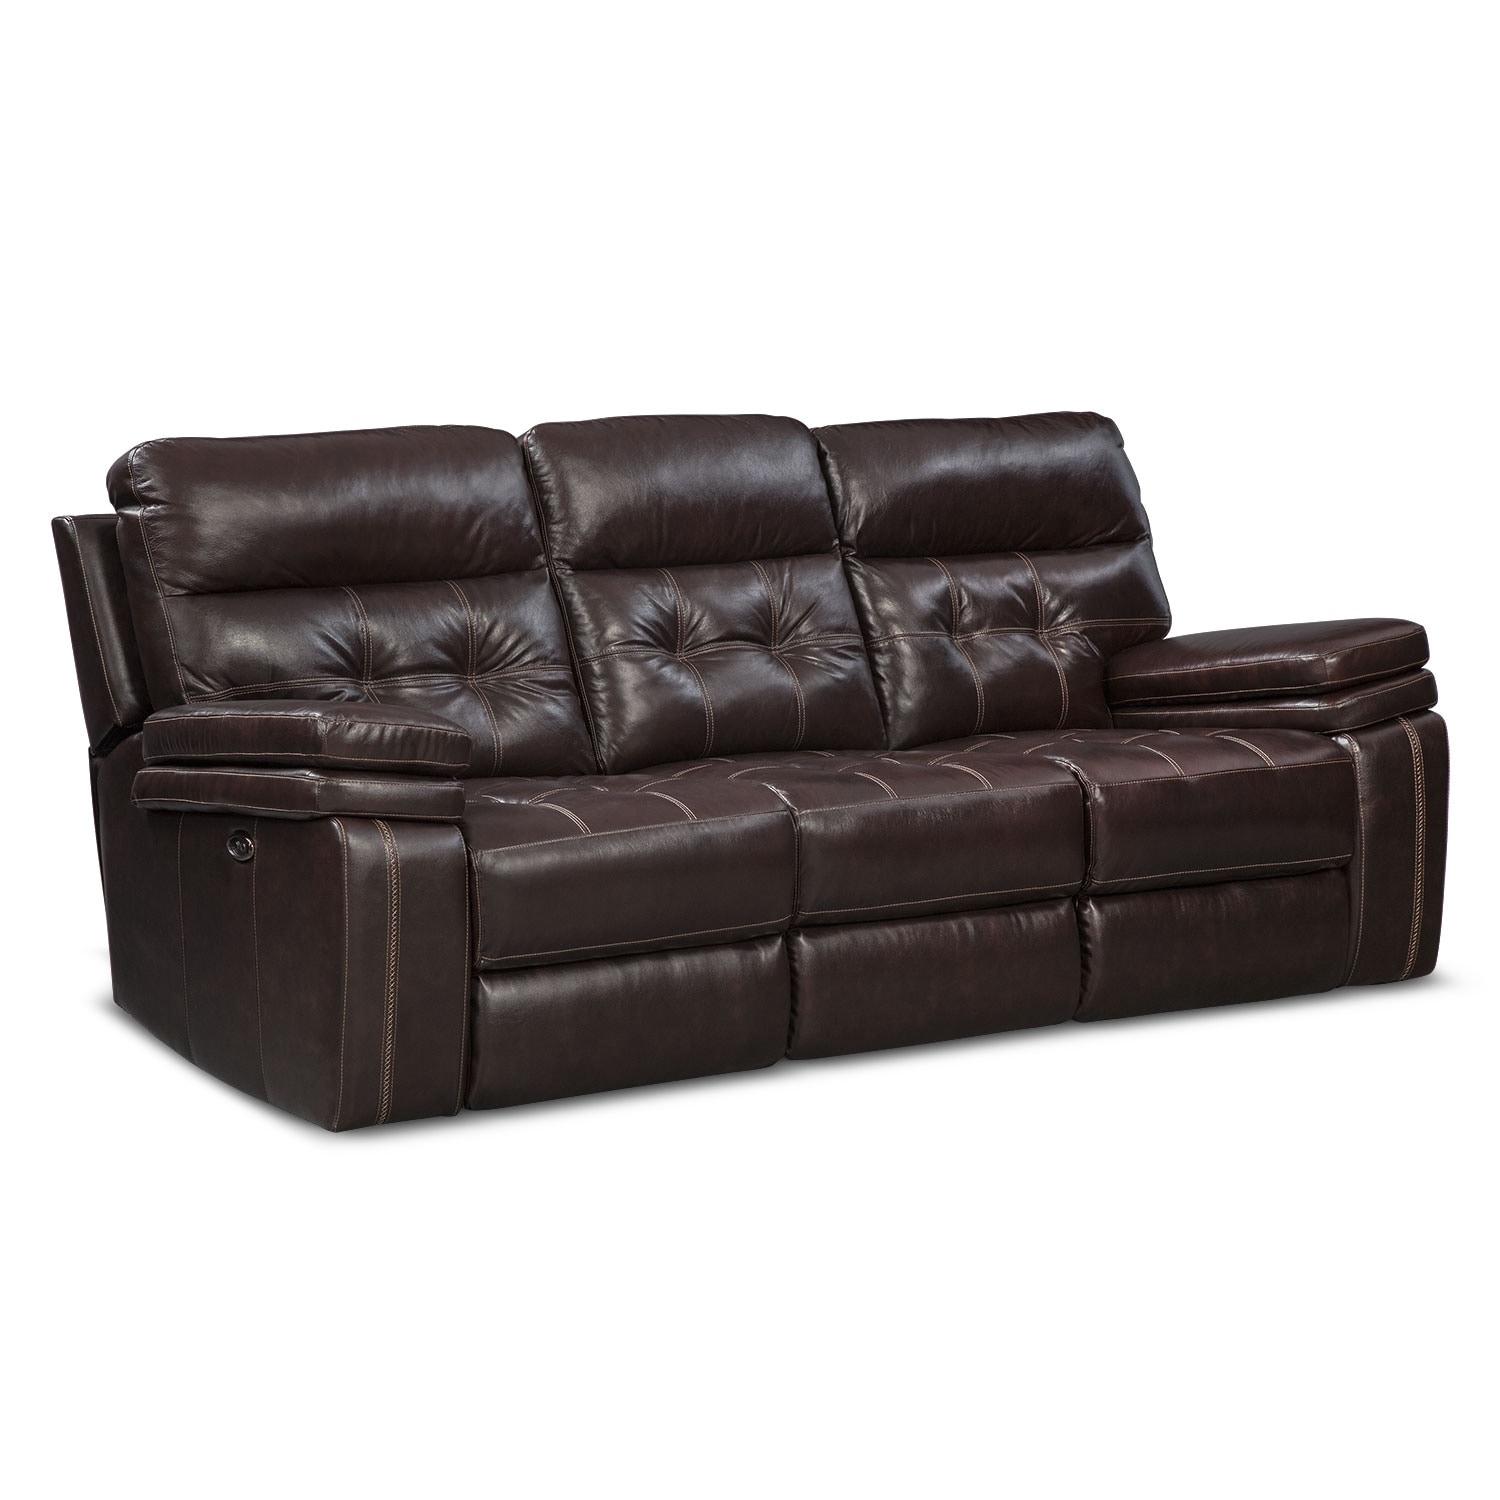 Brisco power reclining sofa and glider recliner brown Power reclining sofas and loveseats